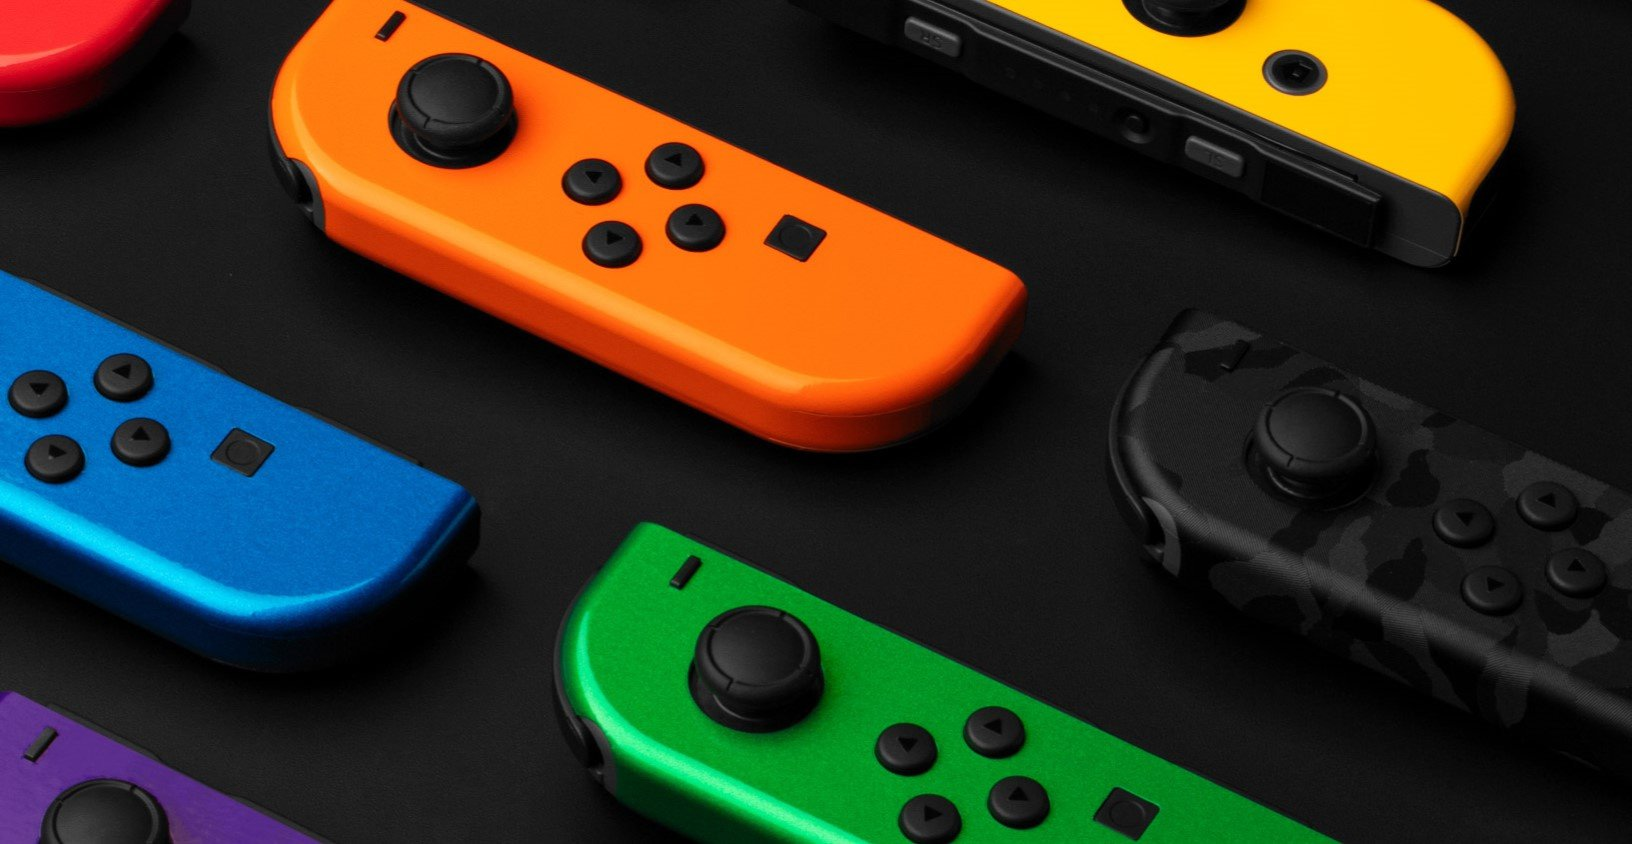 Customise Your Nintendo Switch With These Safe Console Skins